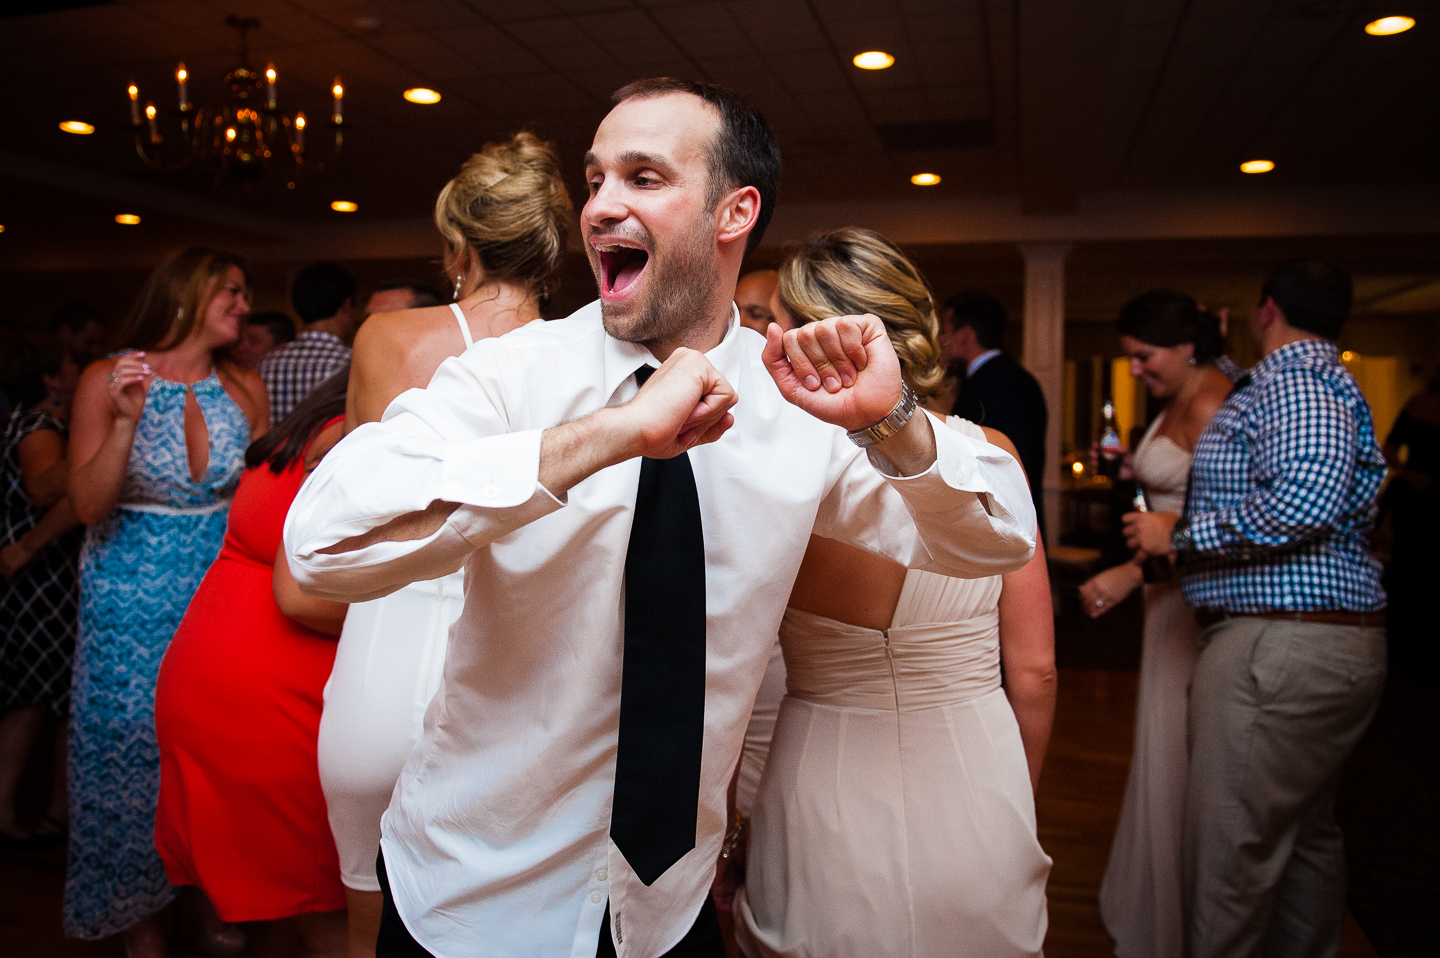 a wedding guest showing off his dance moves